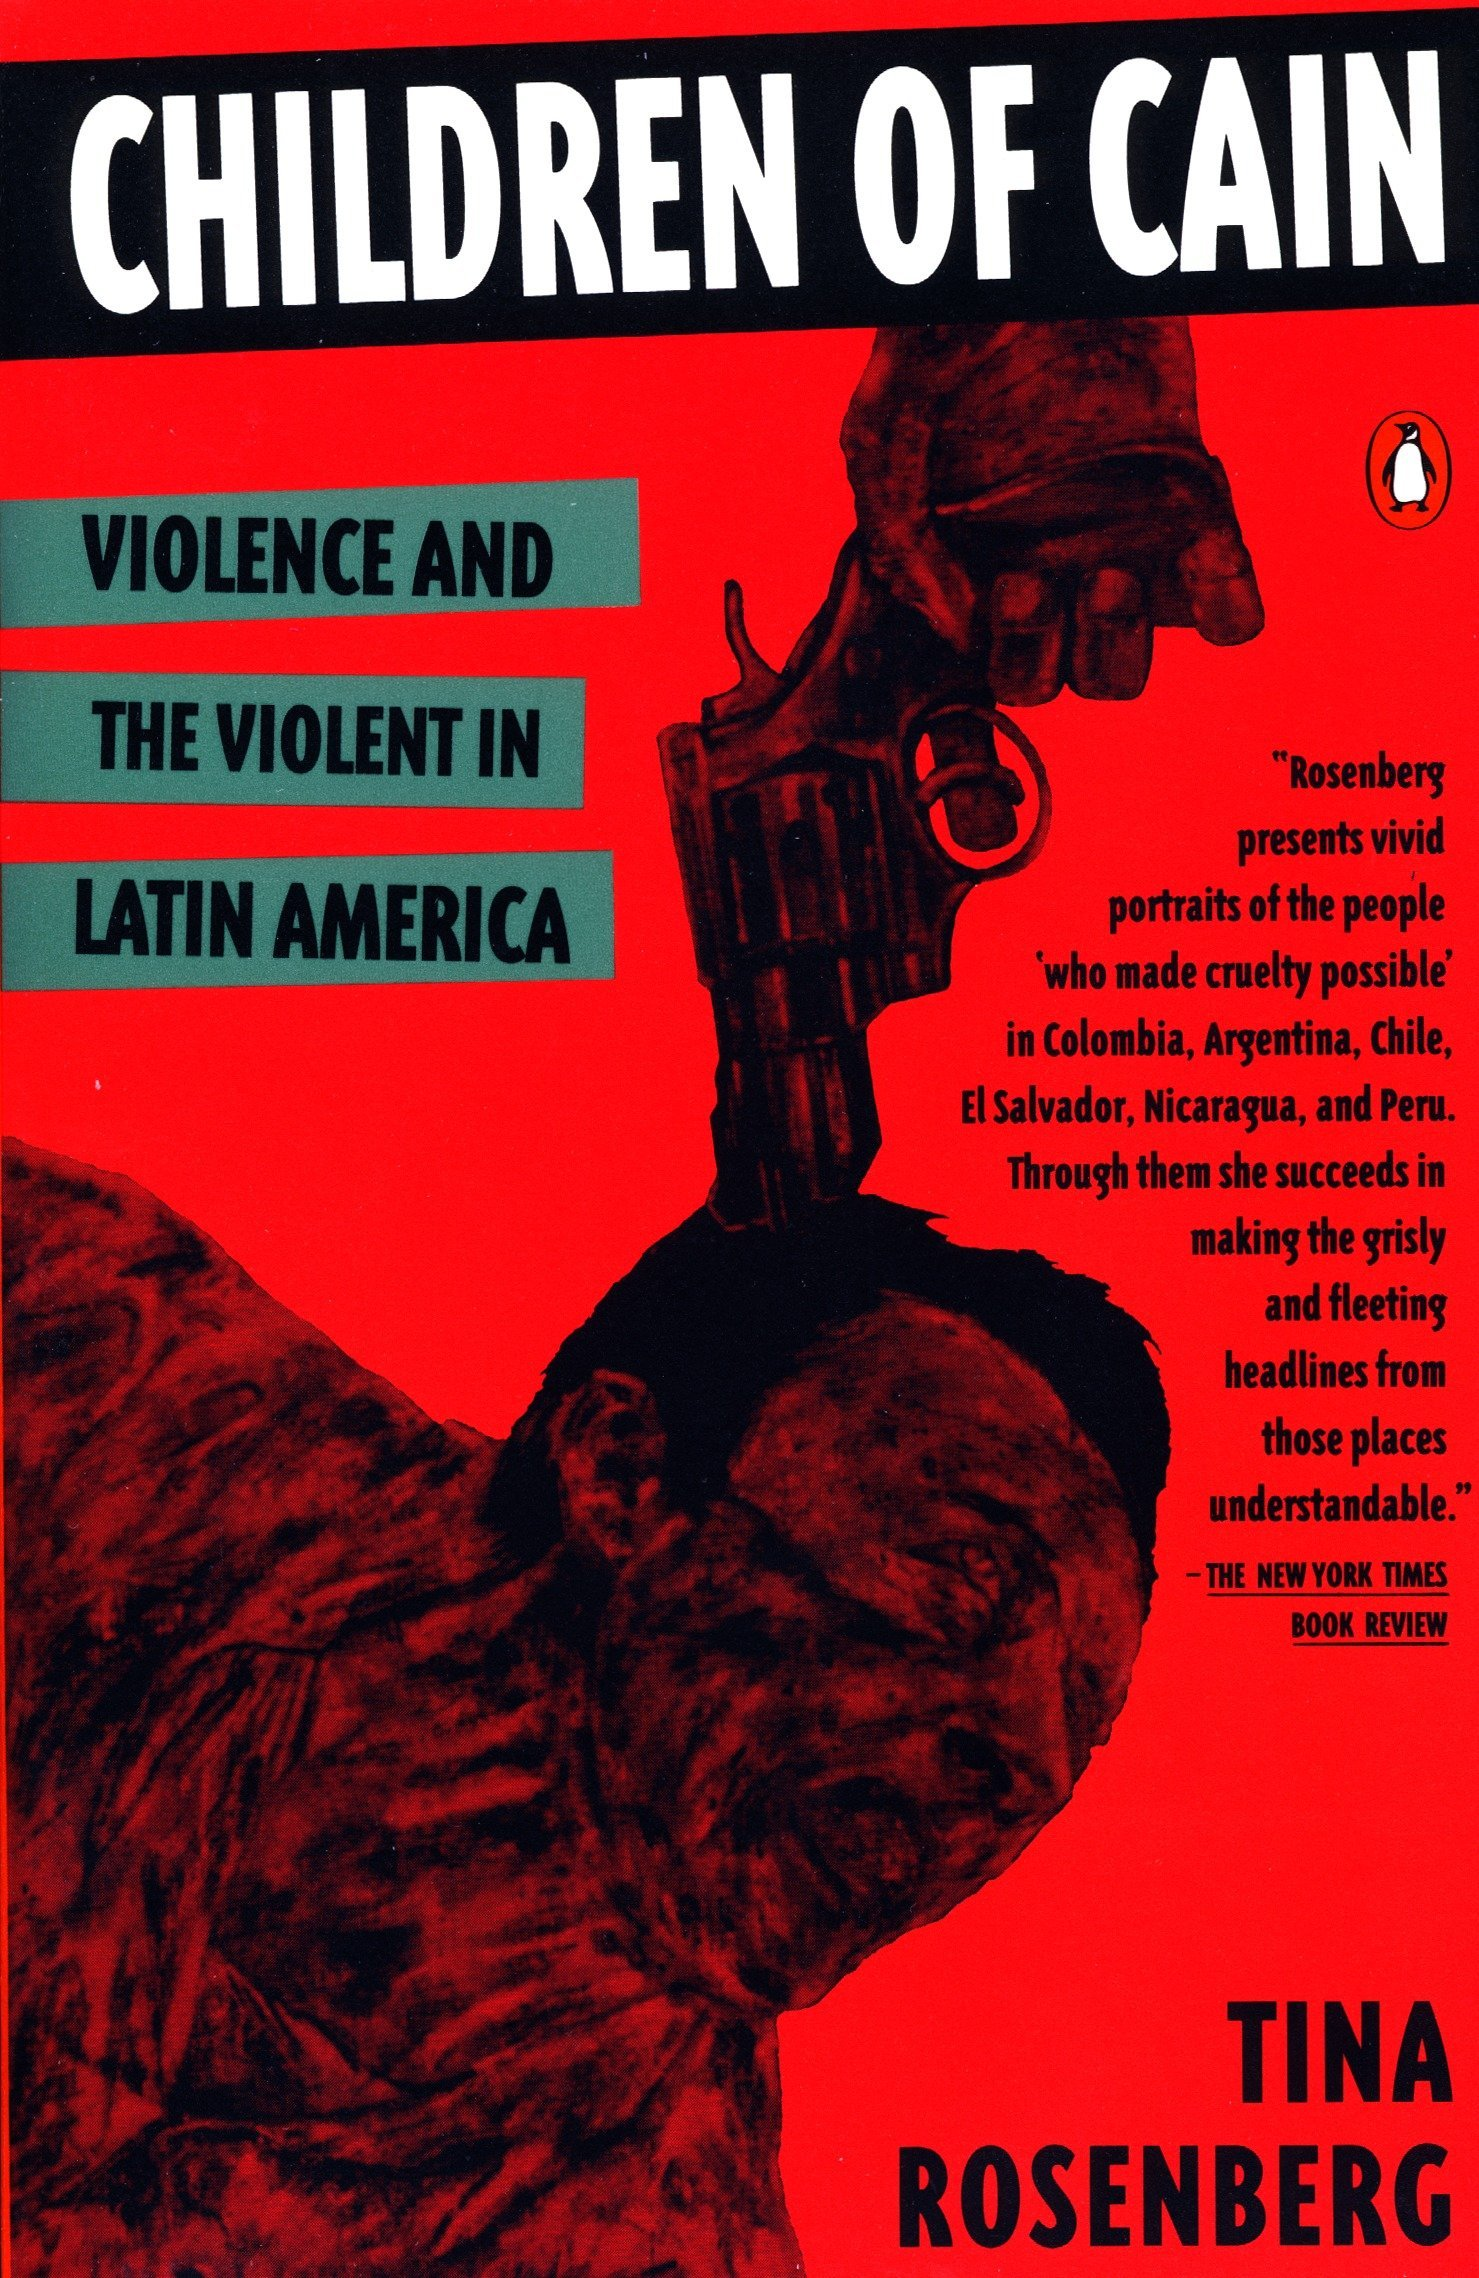 Children of Cain: Violence And the Violent in Latin America: Amazon.es: Tina Rosenberg: Libros en idiomas extranjeros